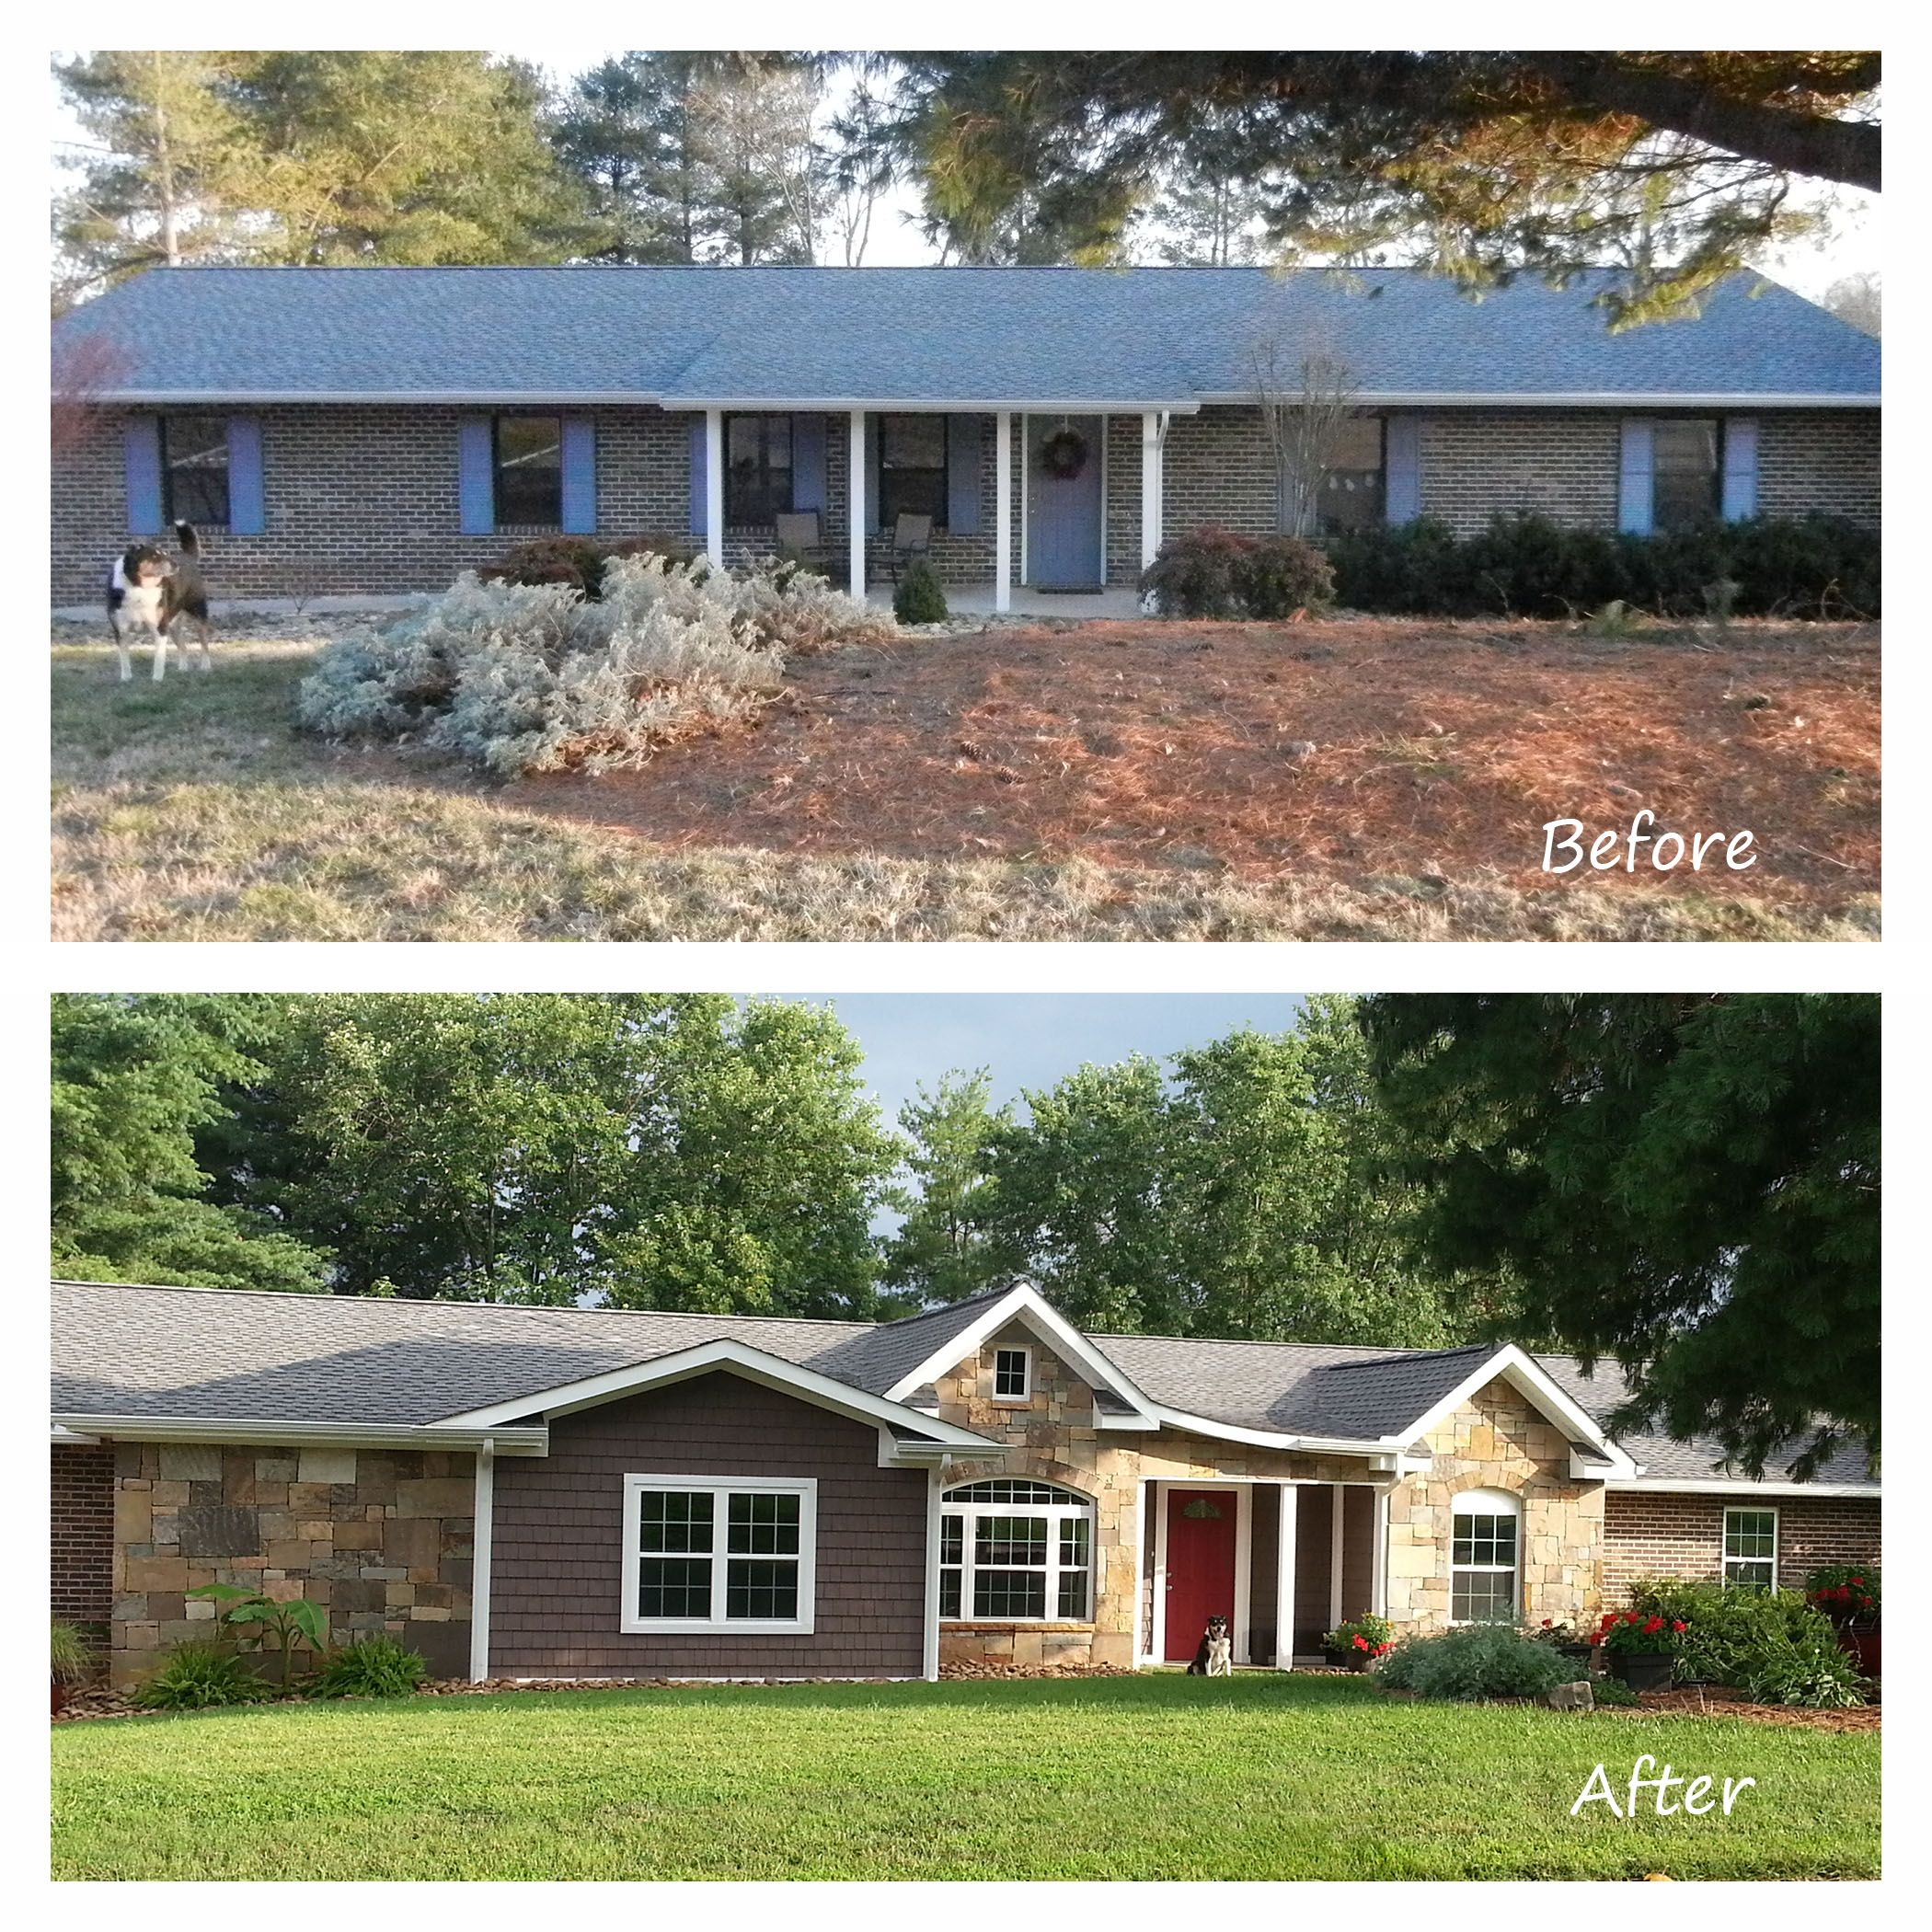 Before and after exterior renovation ranch house remodel for Small ranch house remodel